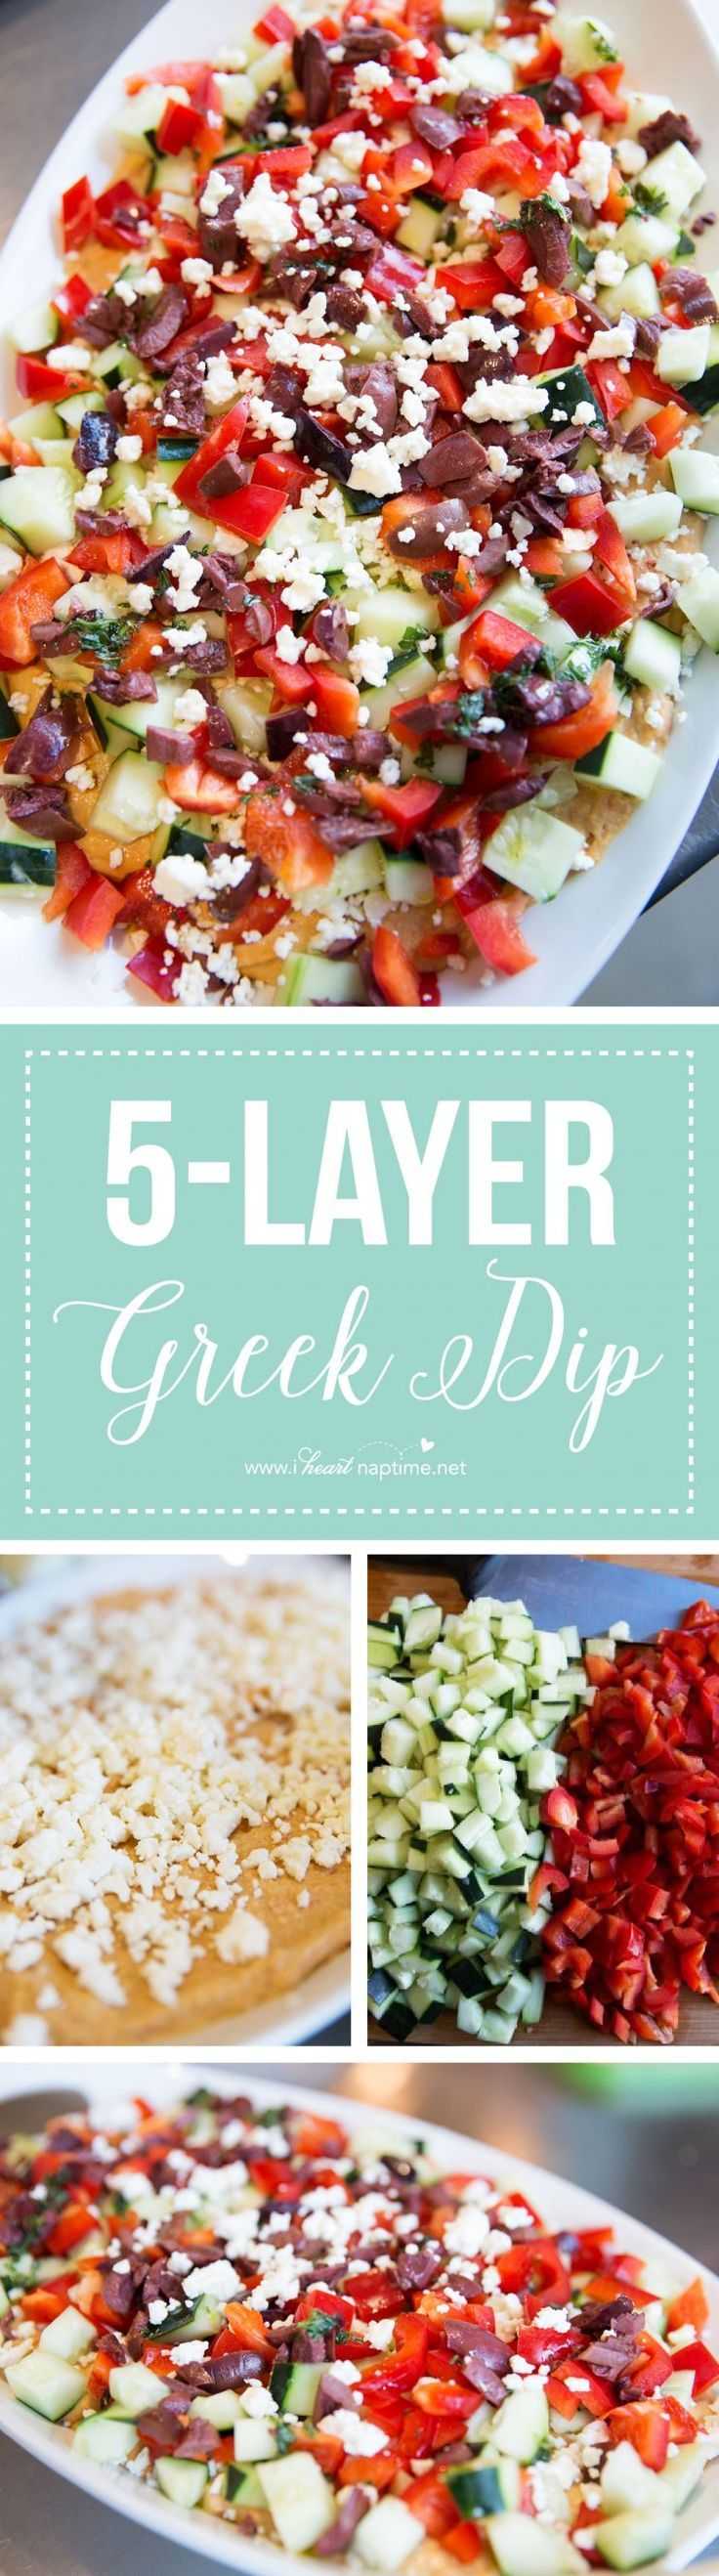 This 5-layer Greek Dip is the ultimate appetizer and so easy to make. It's light and tastes great with fresh vegetables, naan bread or pita chips!